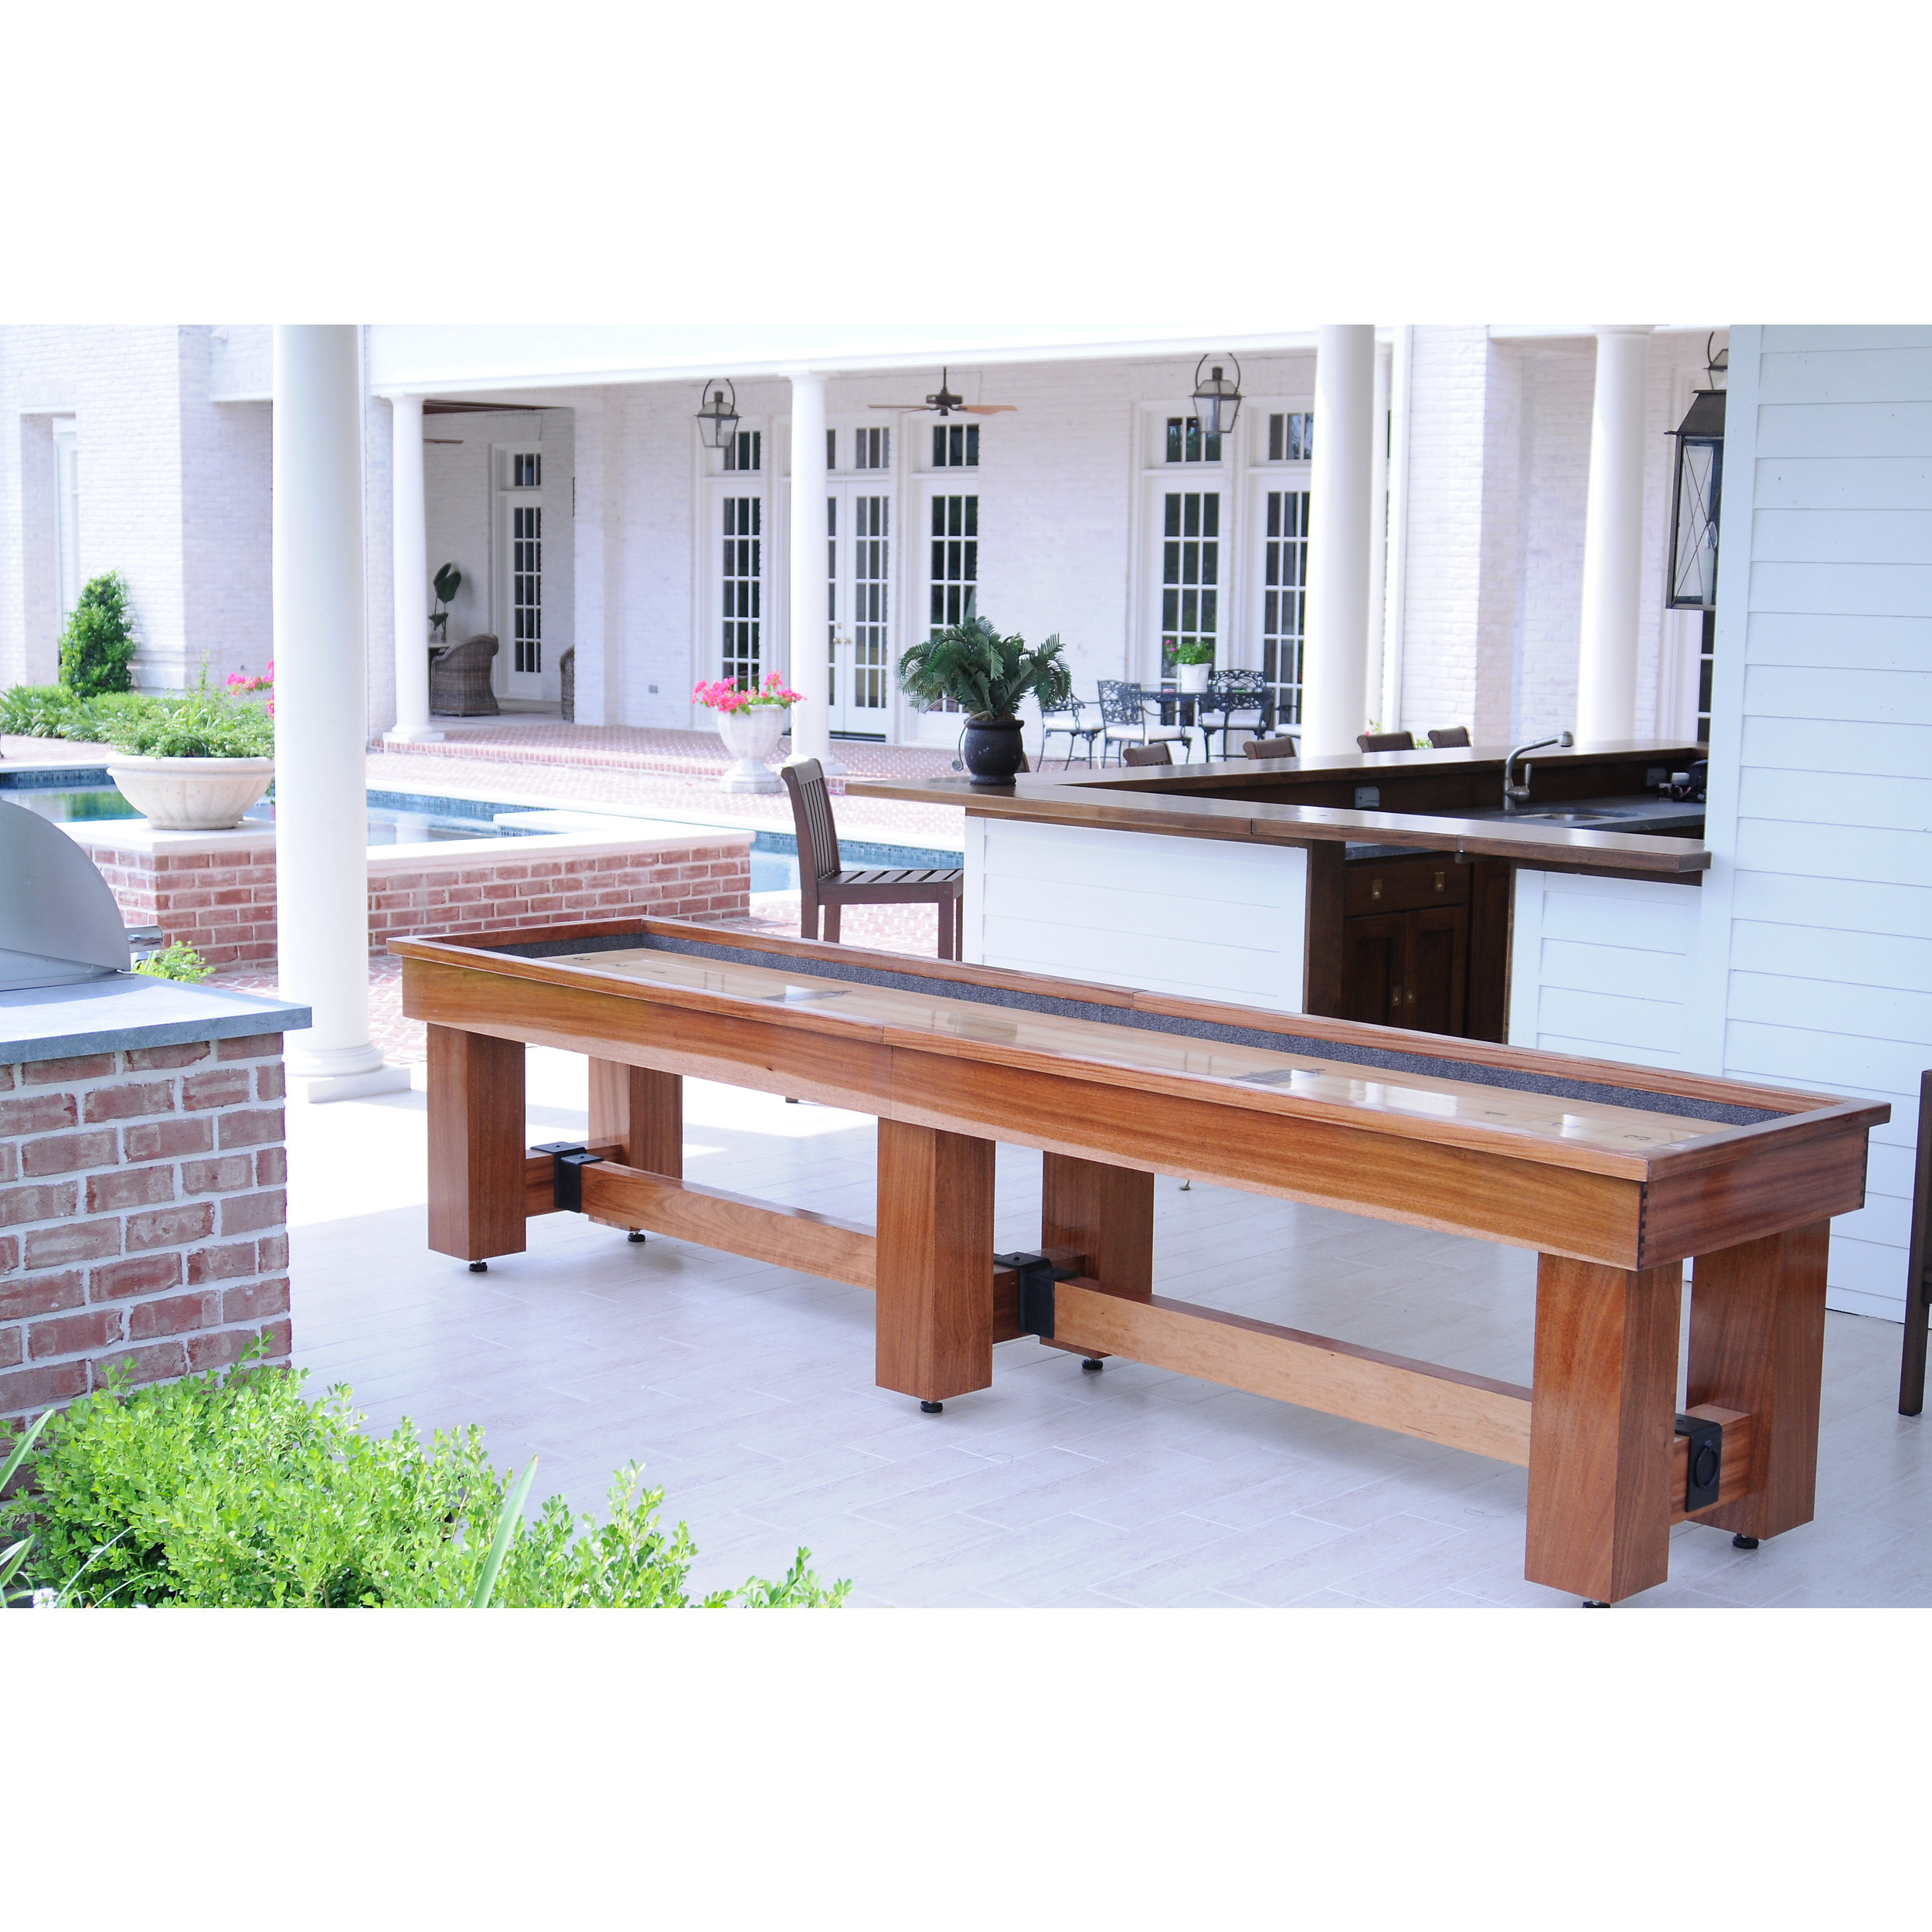 order custom by made theindustrialfarmhouse a shuffleboard from the table buy to rustic handmade